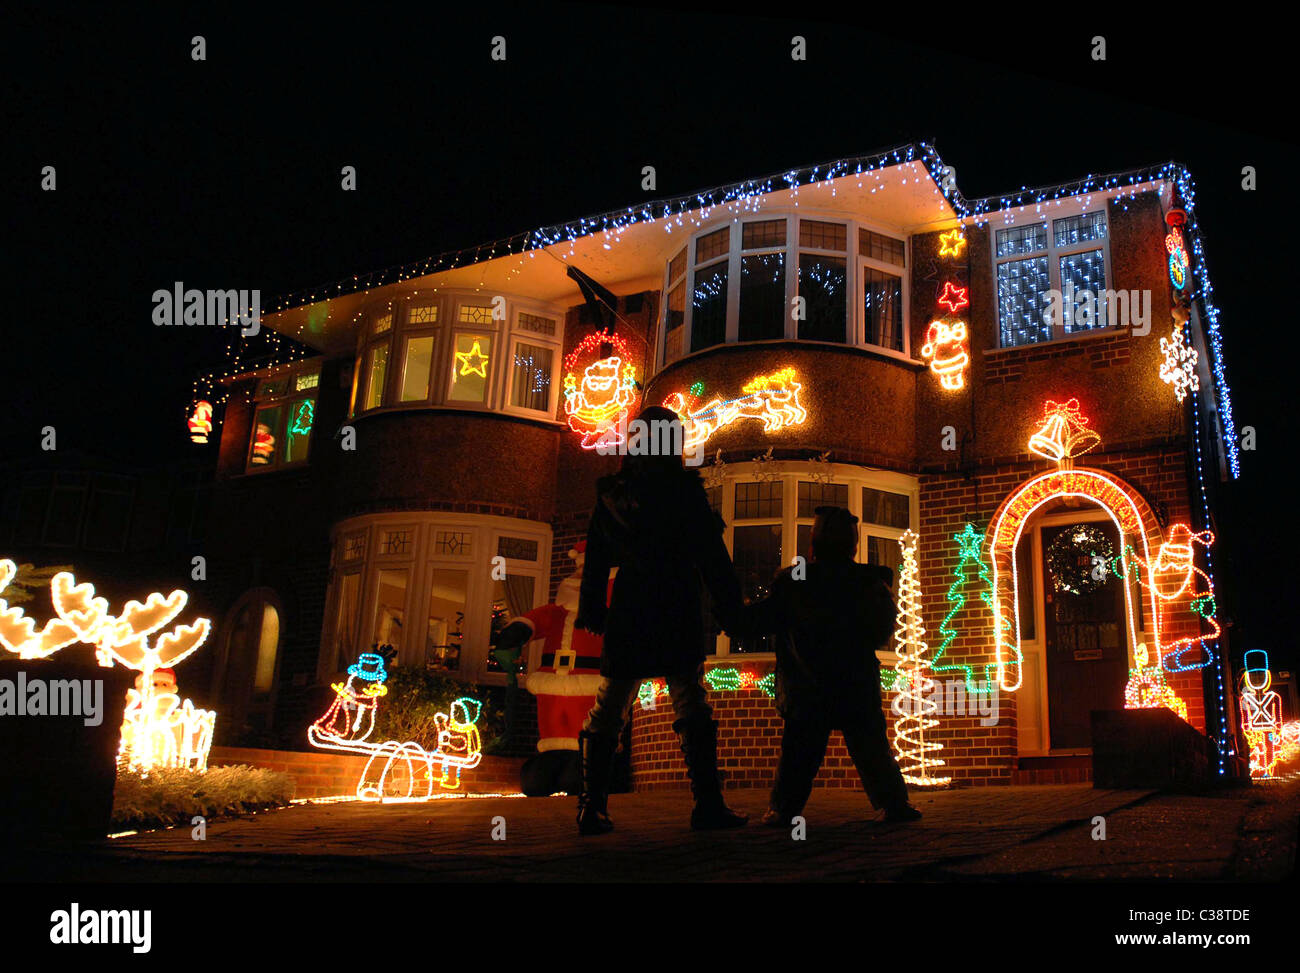 young children stand outside a decorated house at christmas time stock image